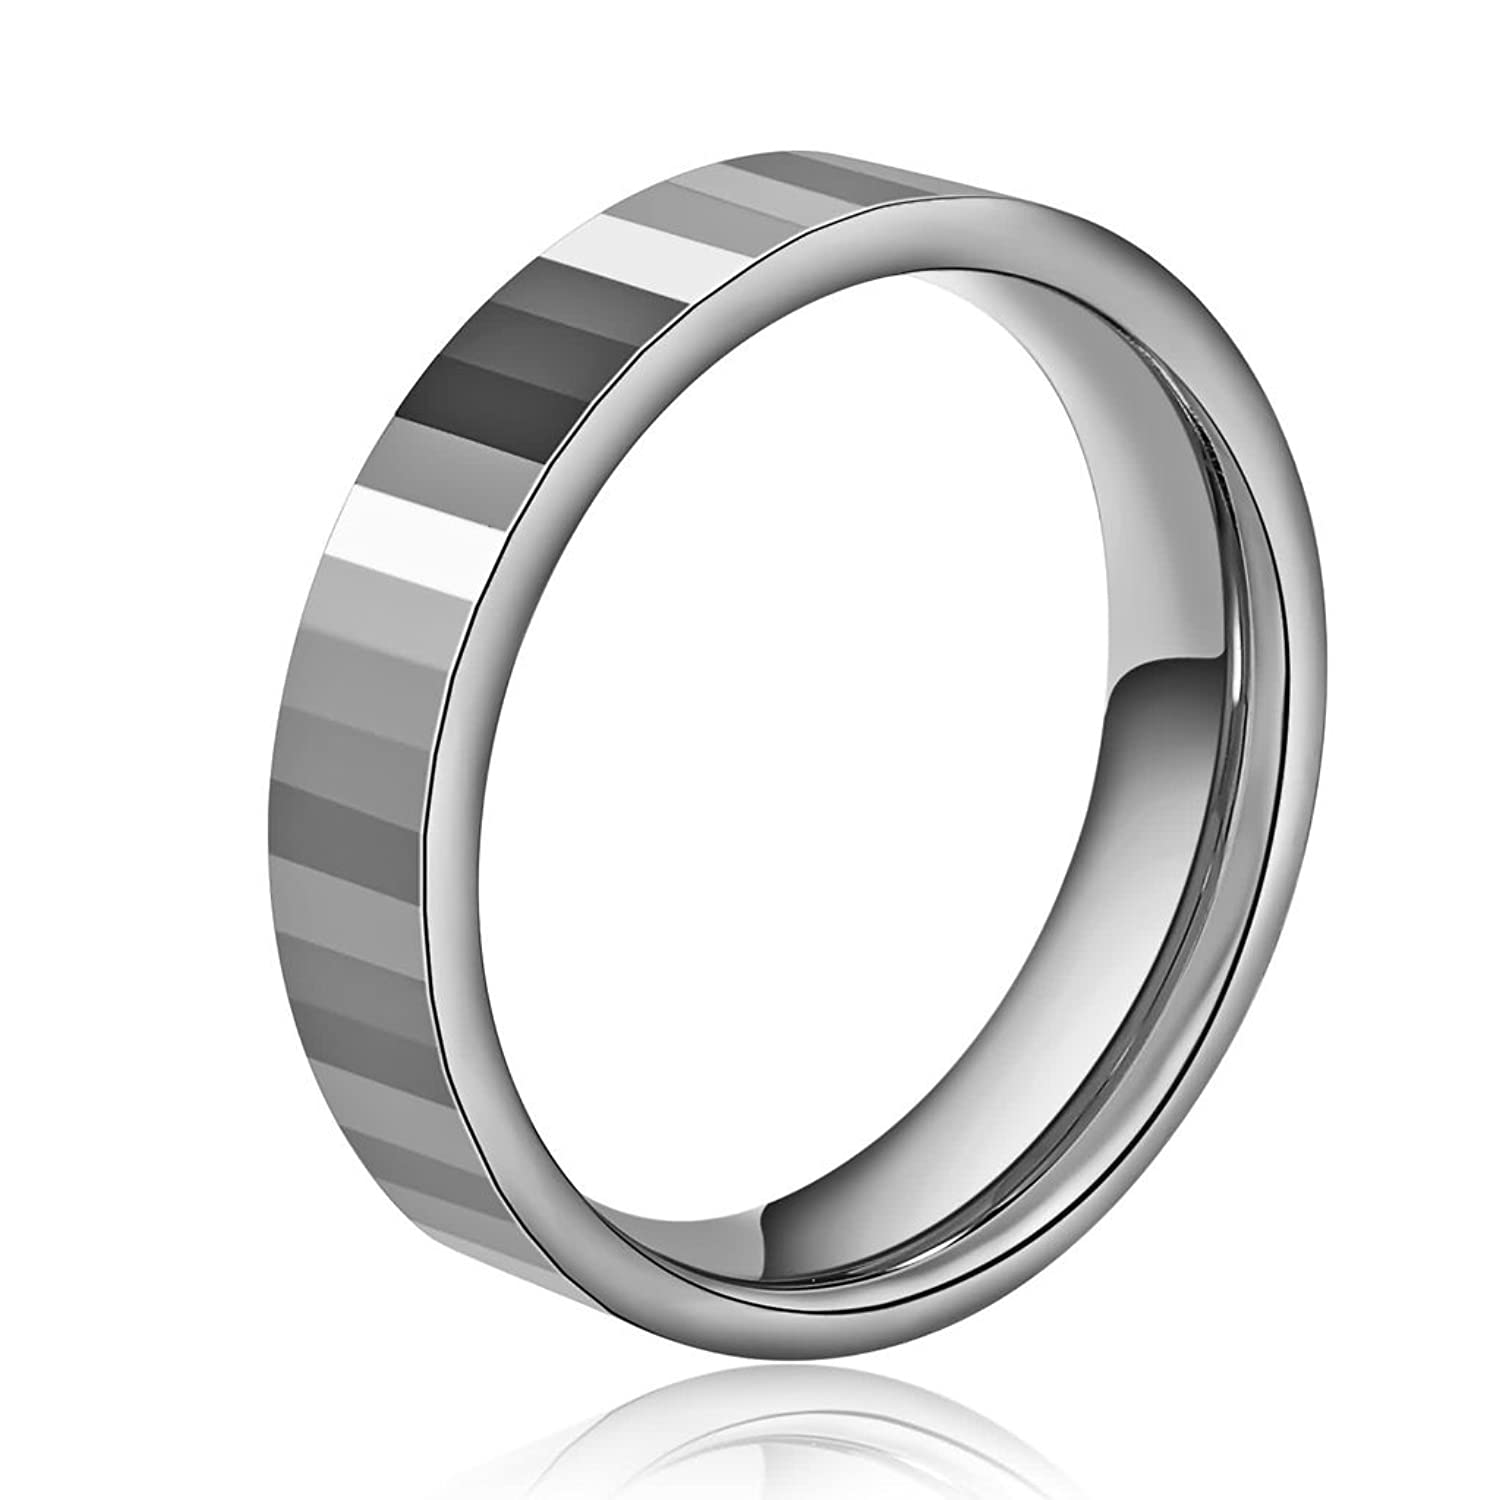 KnBoB Stainless Steel Ring for Men High Polished Comfort Fit Wedding Bands Ring Silver Size 11